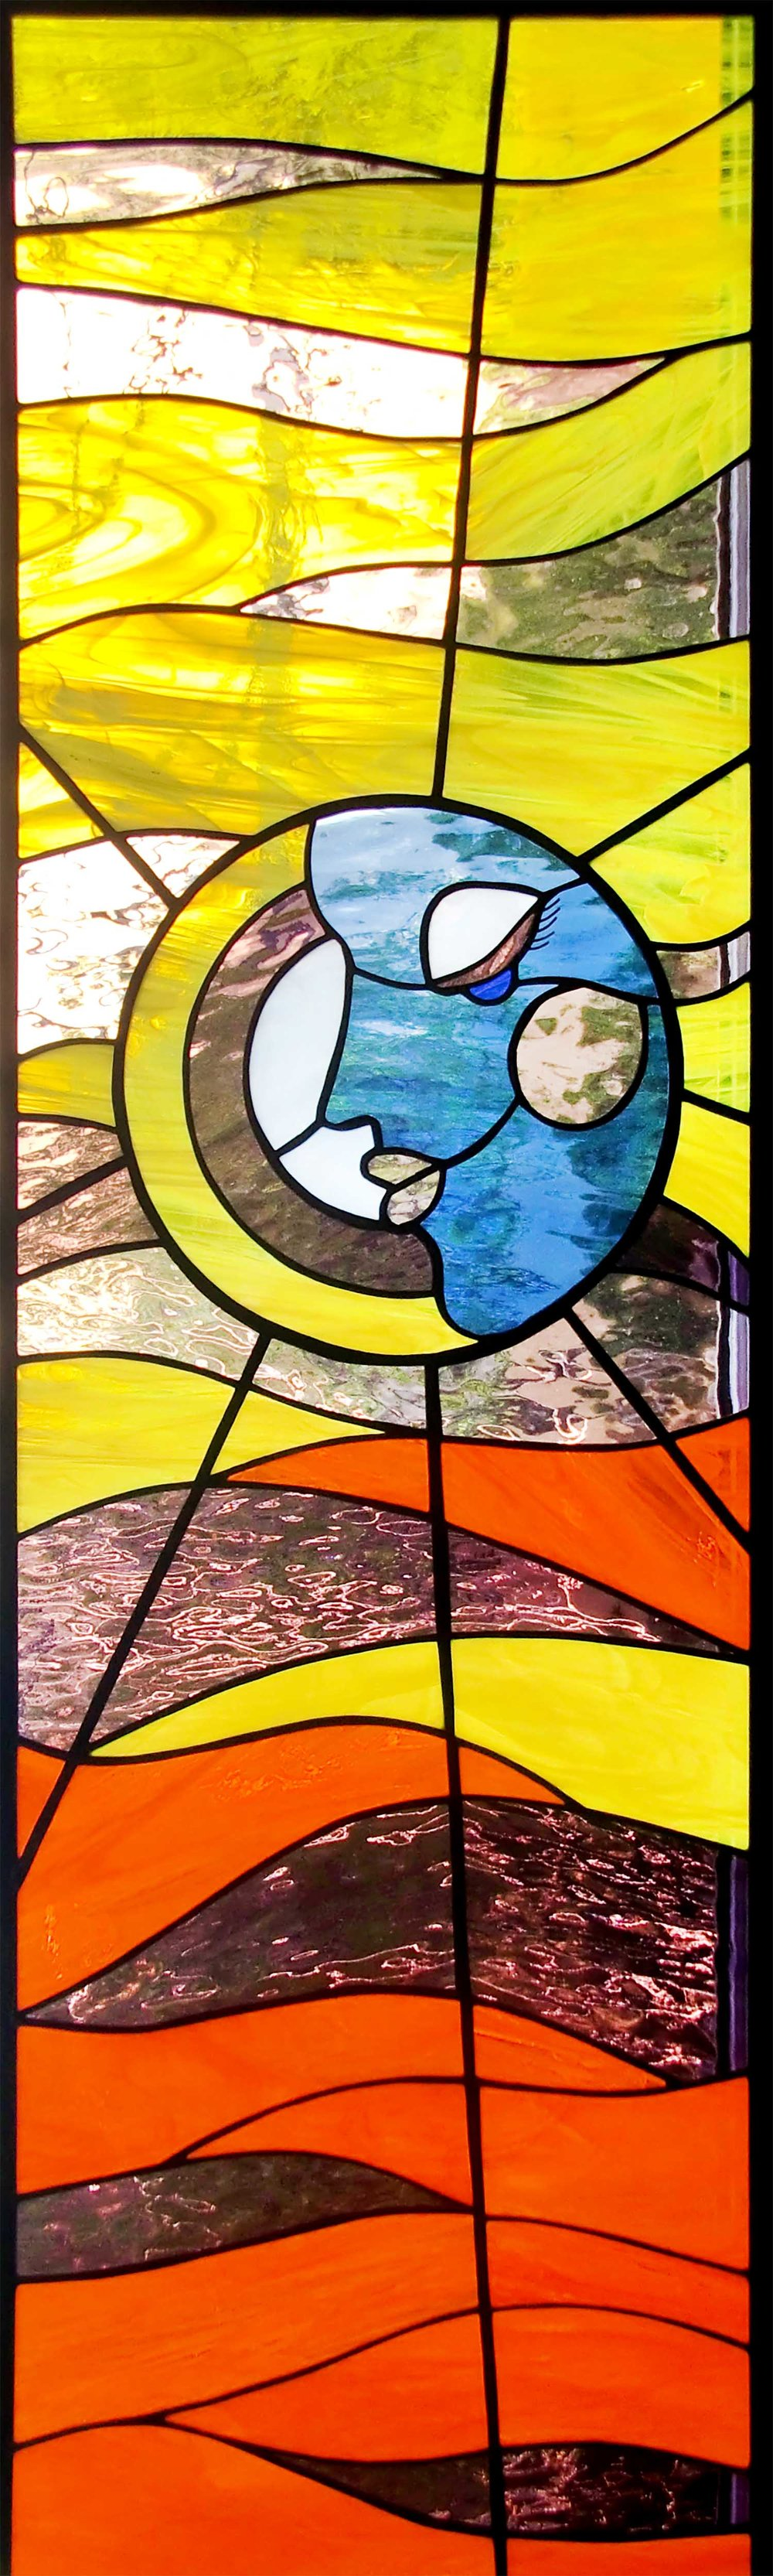 summer abstract face stained glass palo alto atherton menlo park san jose san francisco bay area.jpg